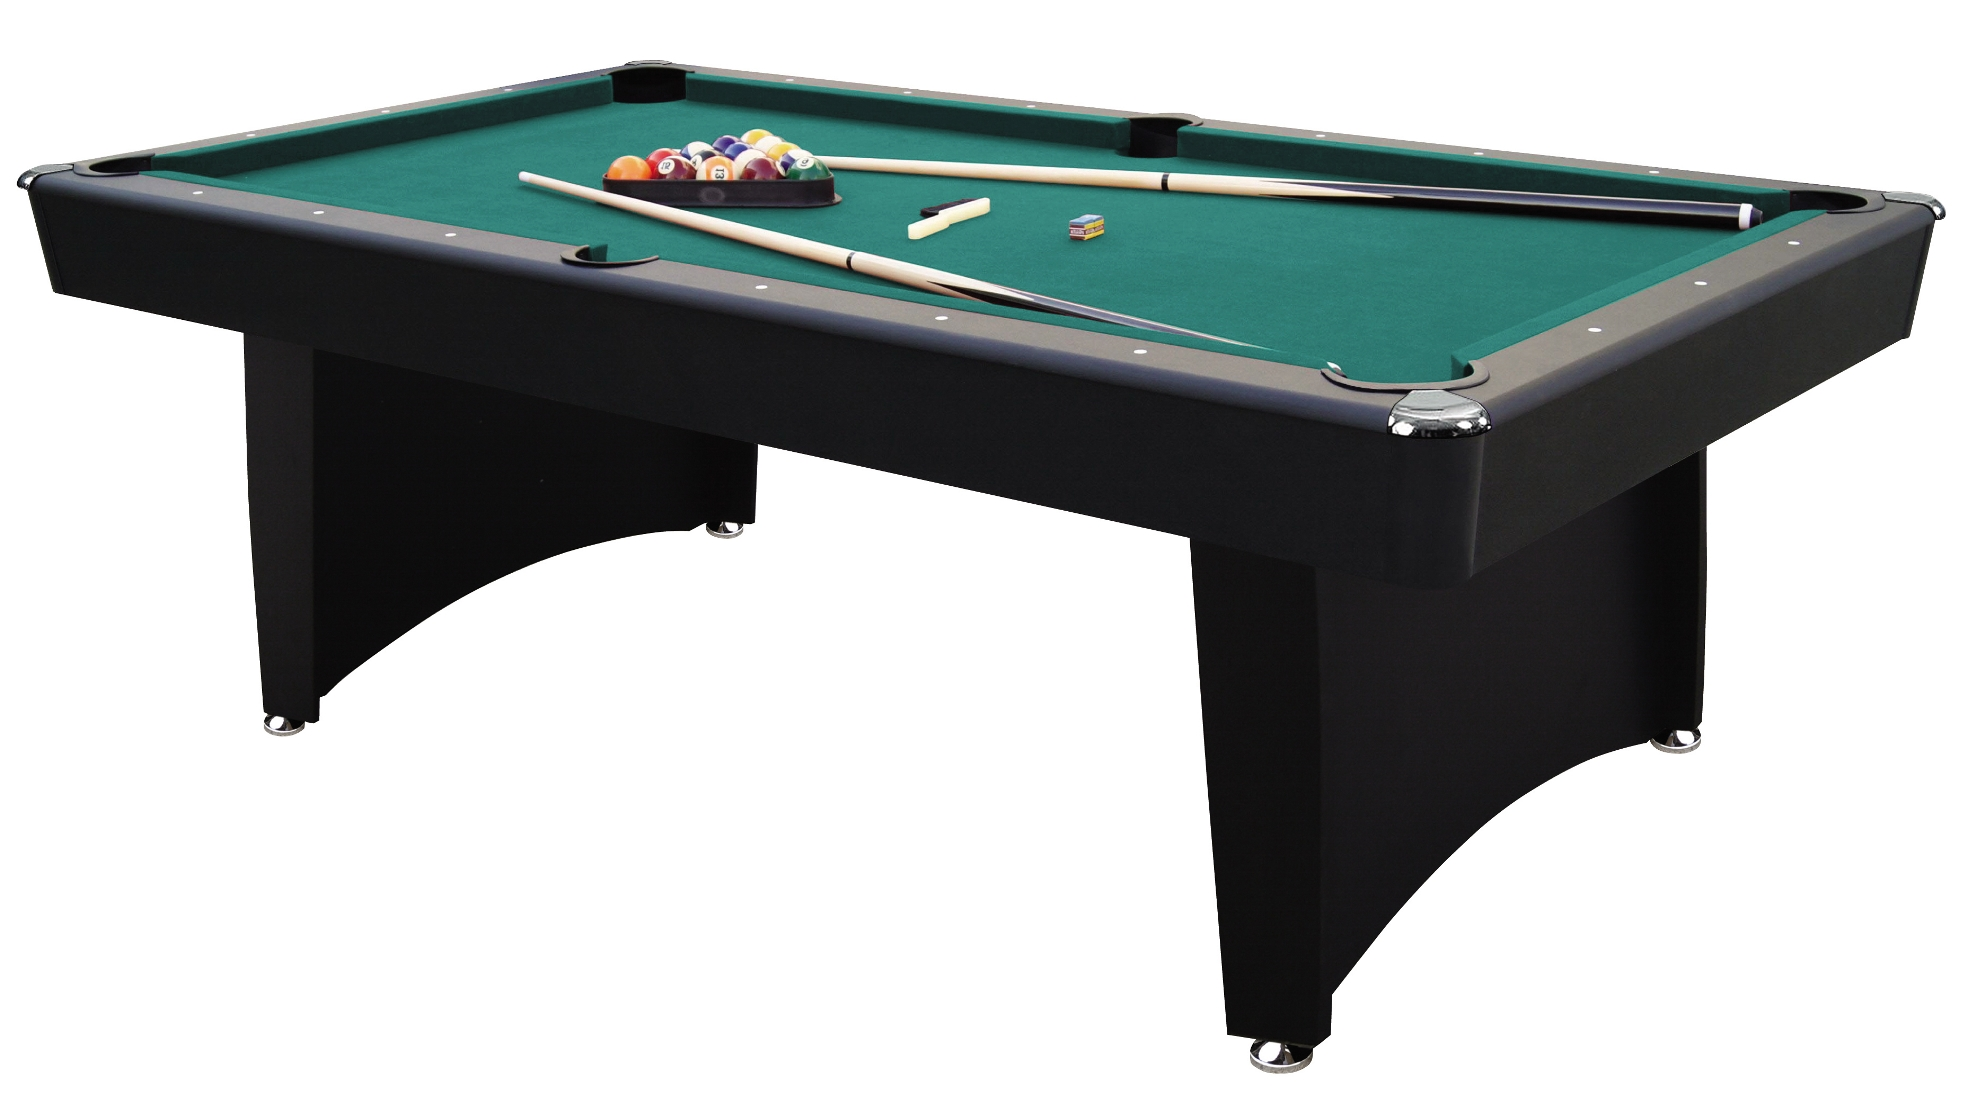 Solex Addison Billiard Table With Table Tennis Top Kmart